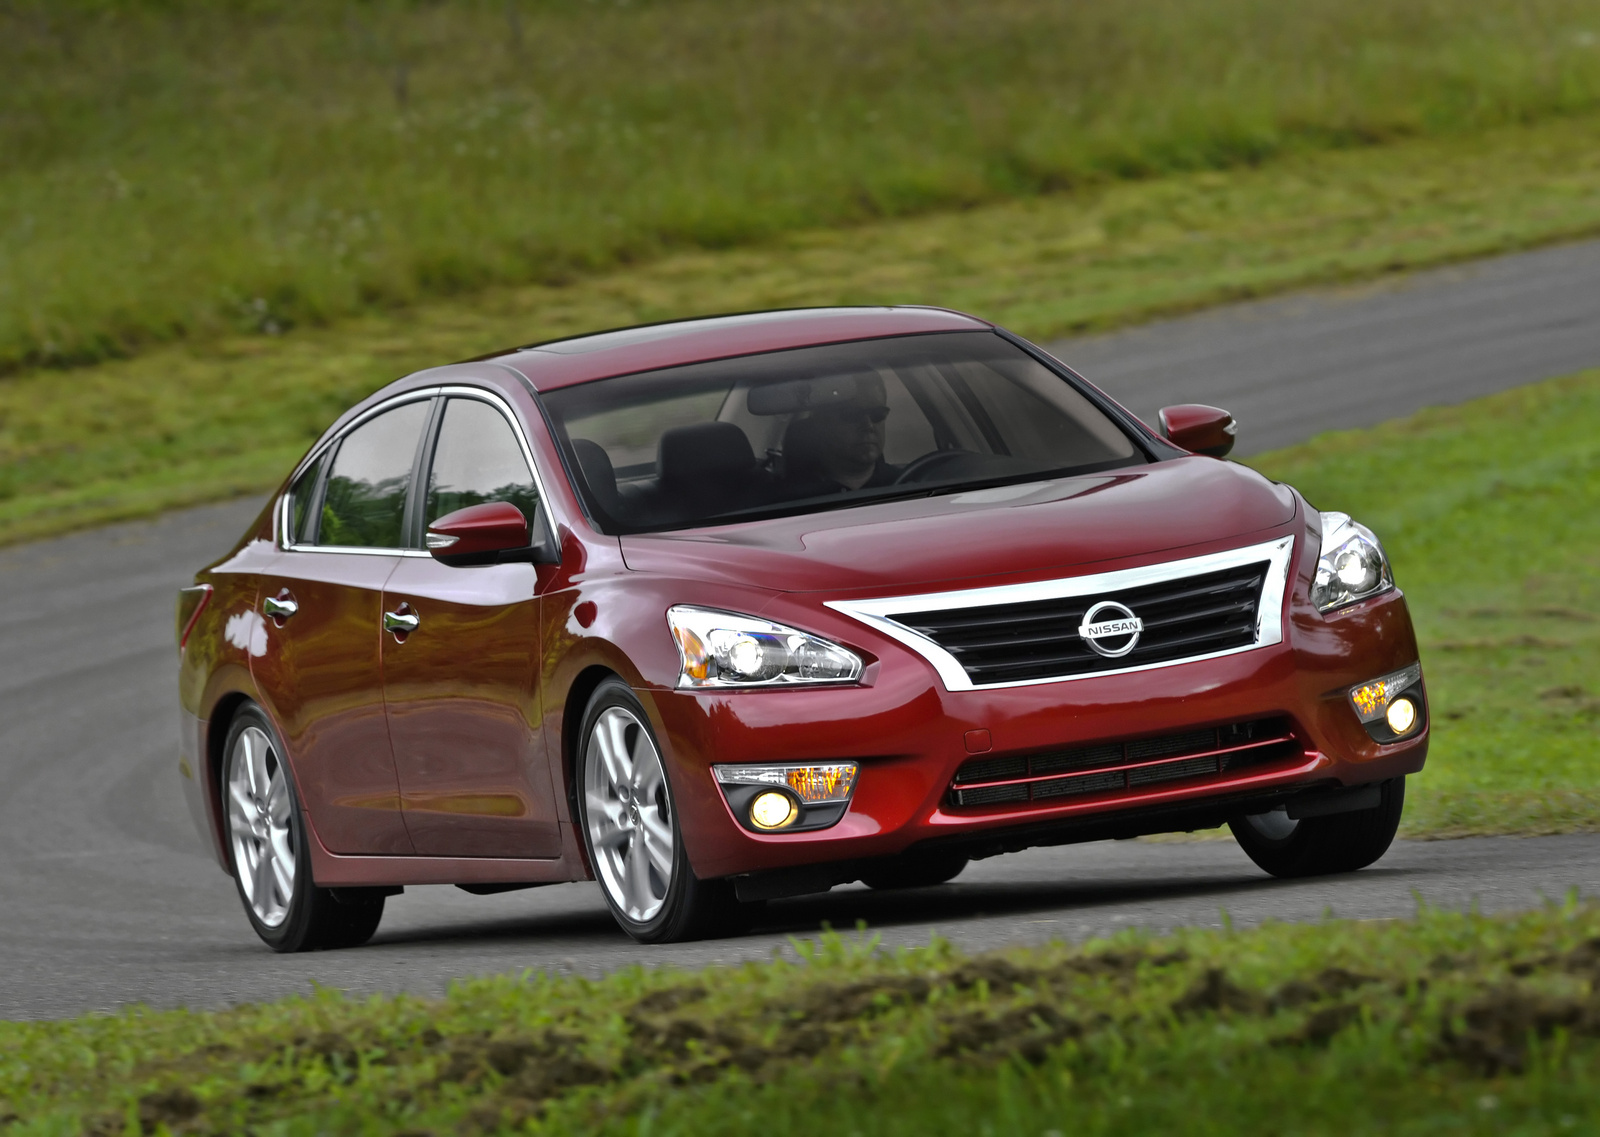 2013 nissan altima pictures cargurus. Black Bedroom Furniture Sets. Home Design Ideas